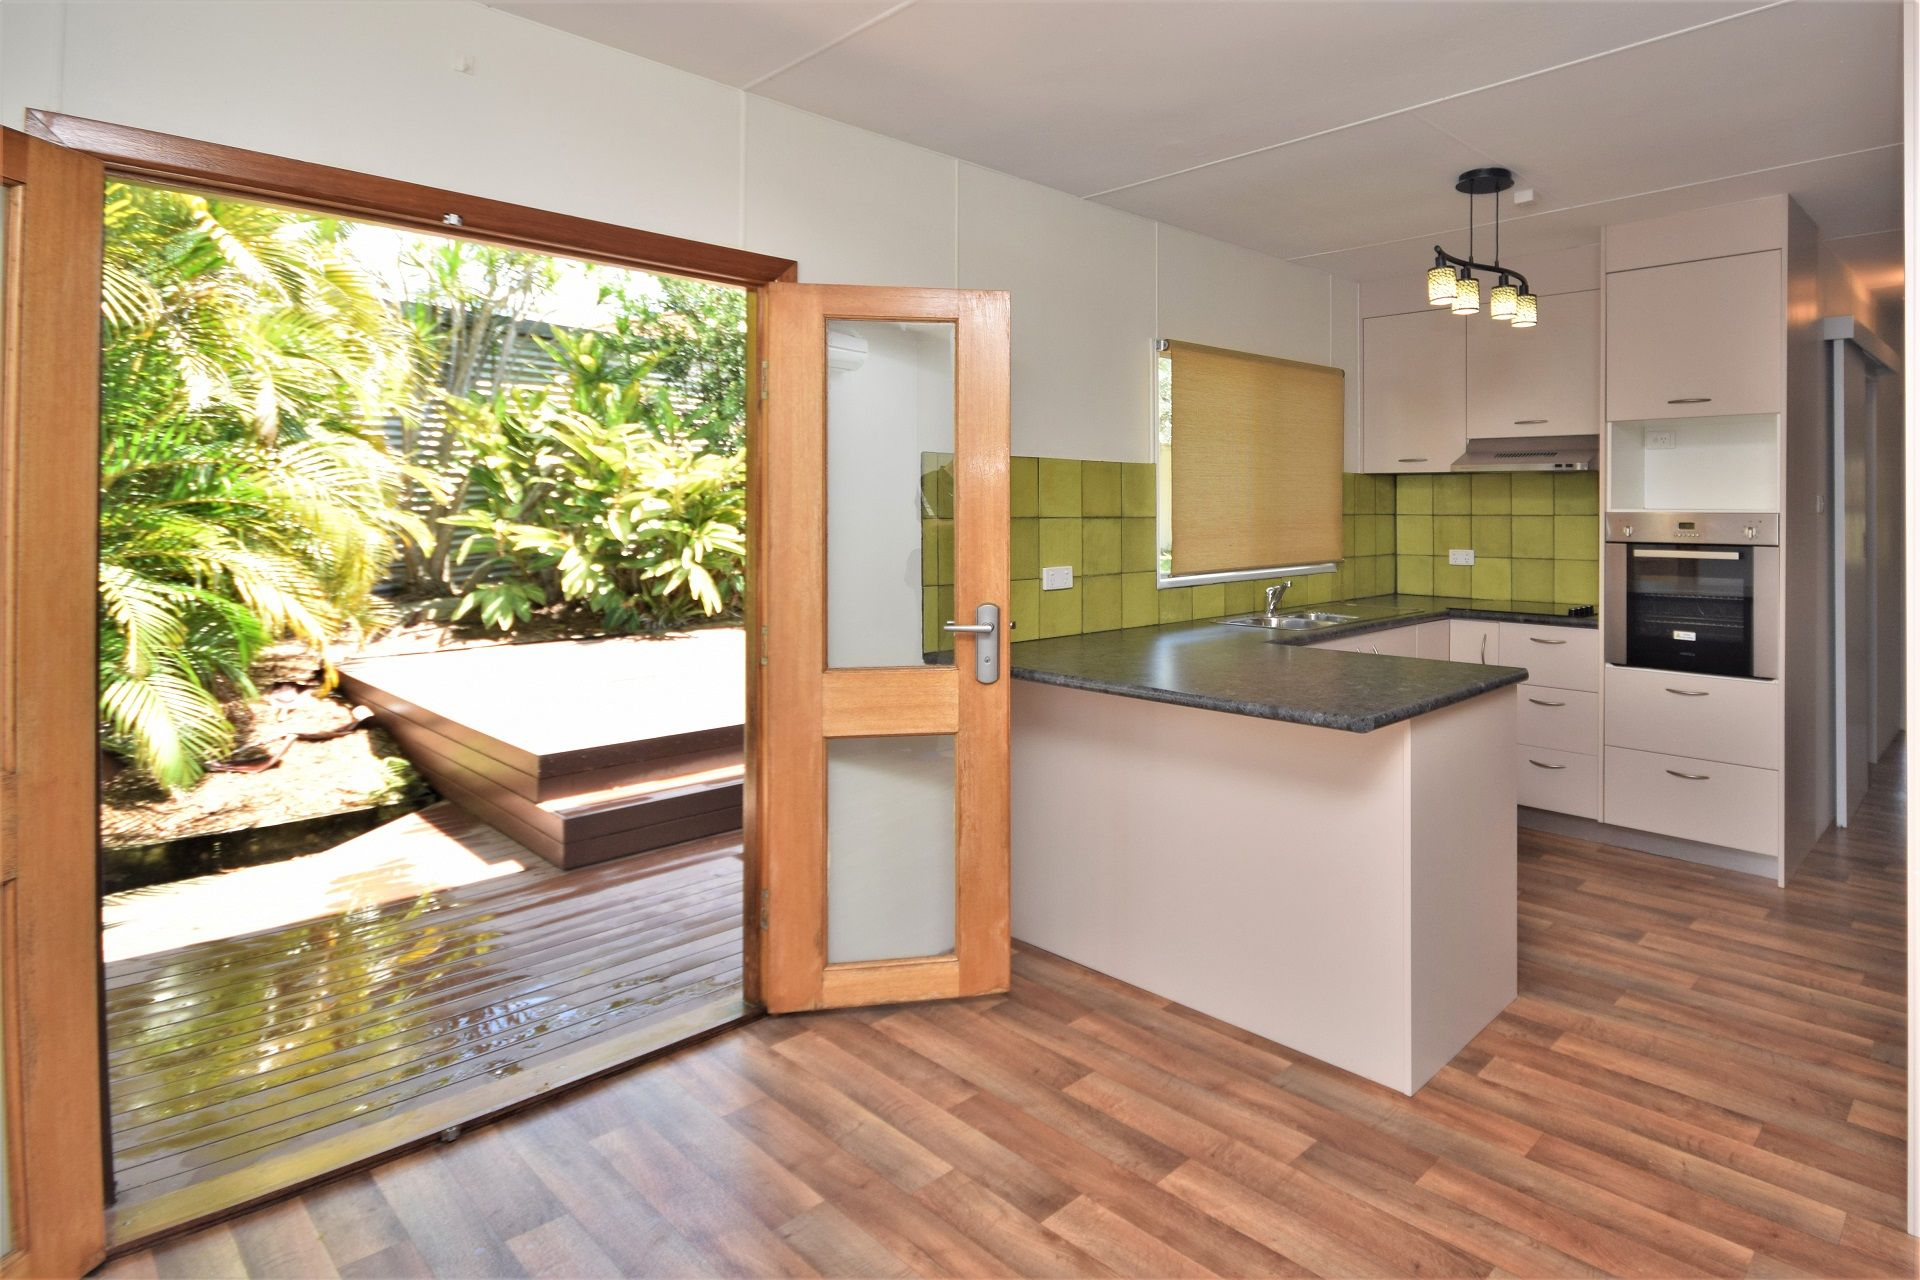 Nambucca Heads Real Estate: Just Move In and Live!